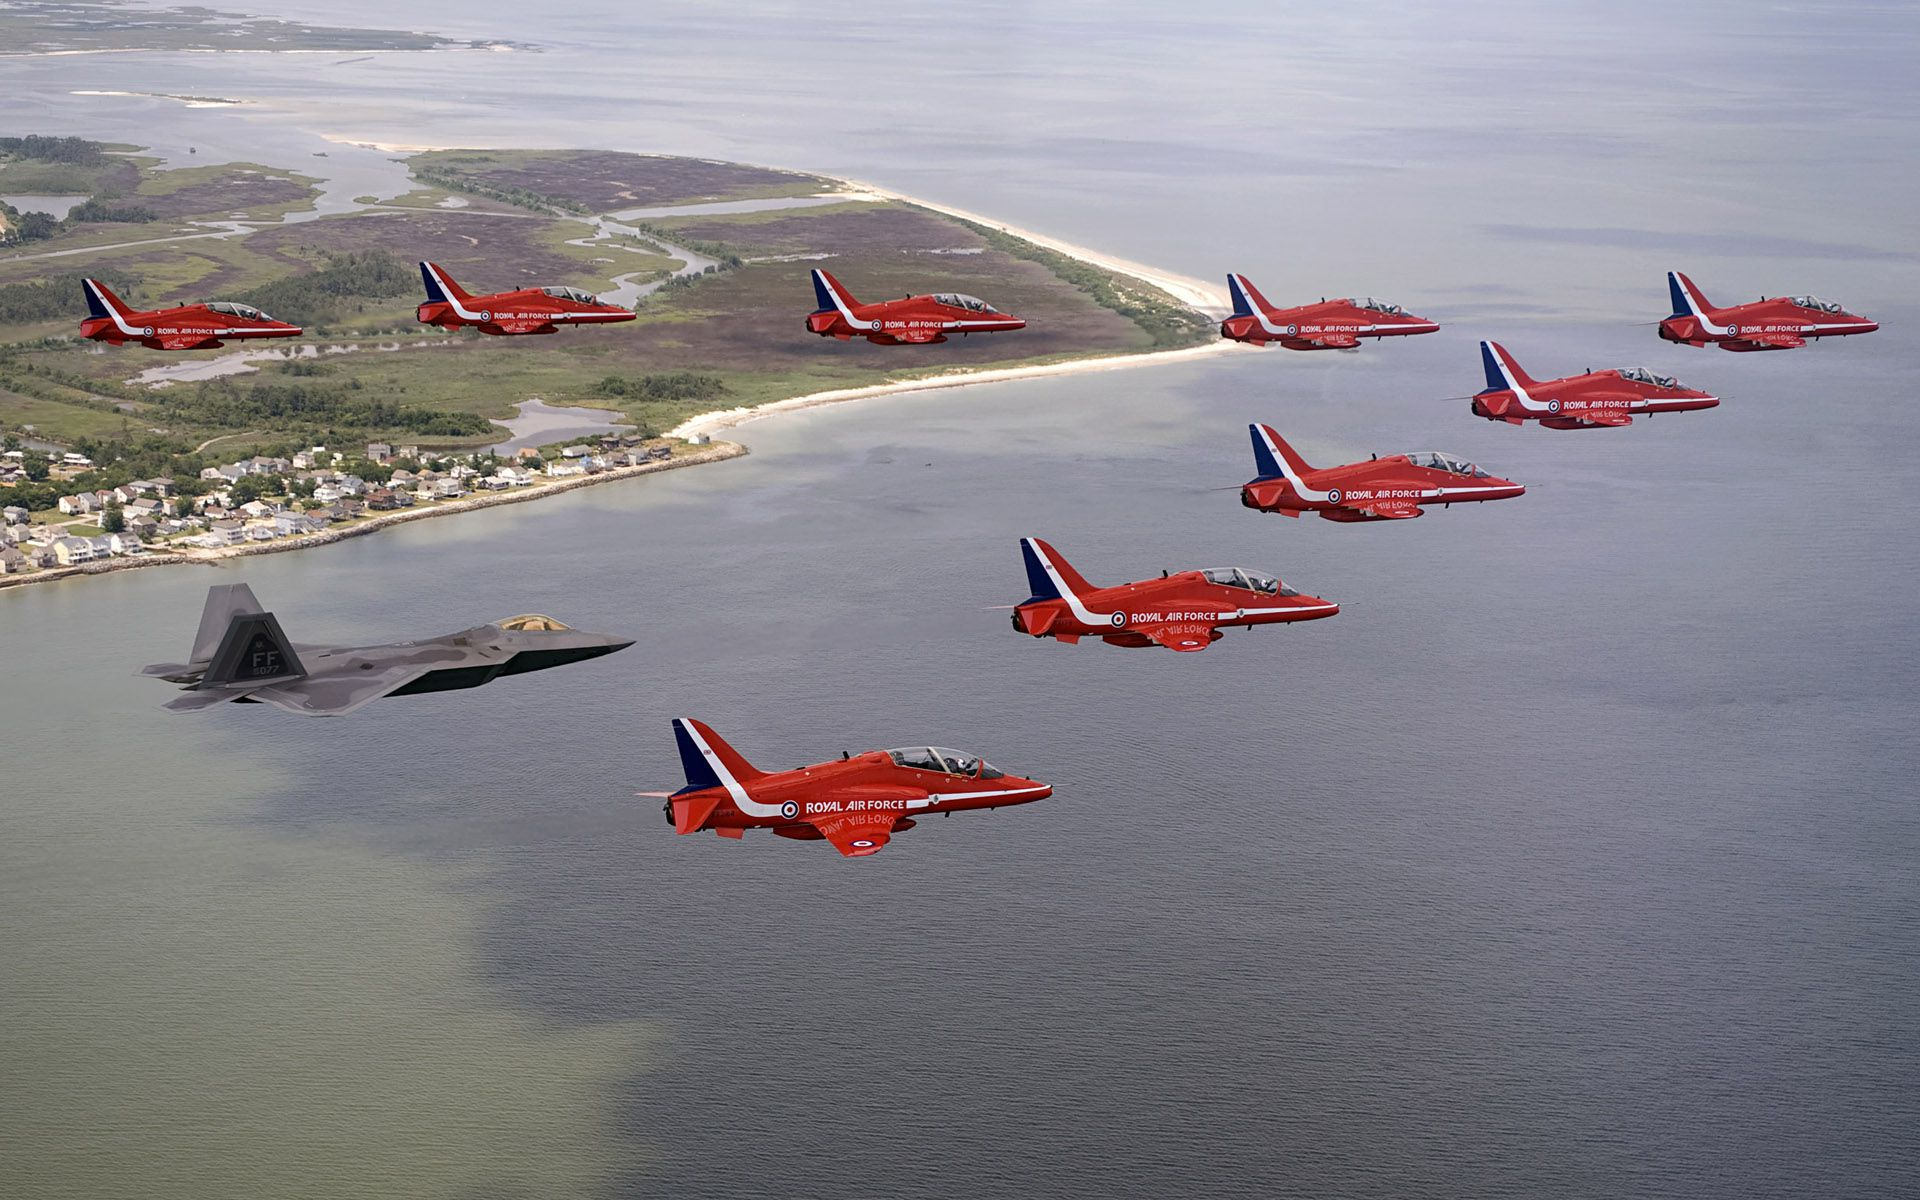 Red Arrows Meet Raptor